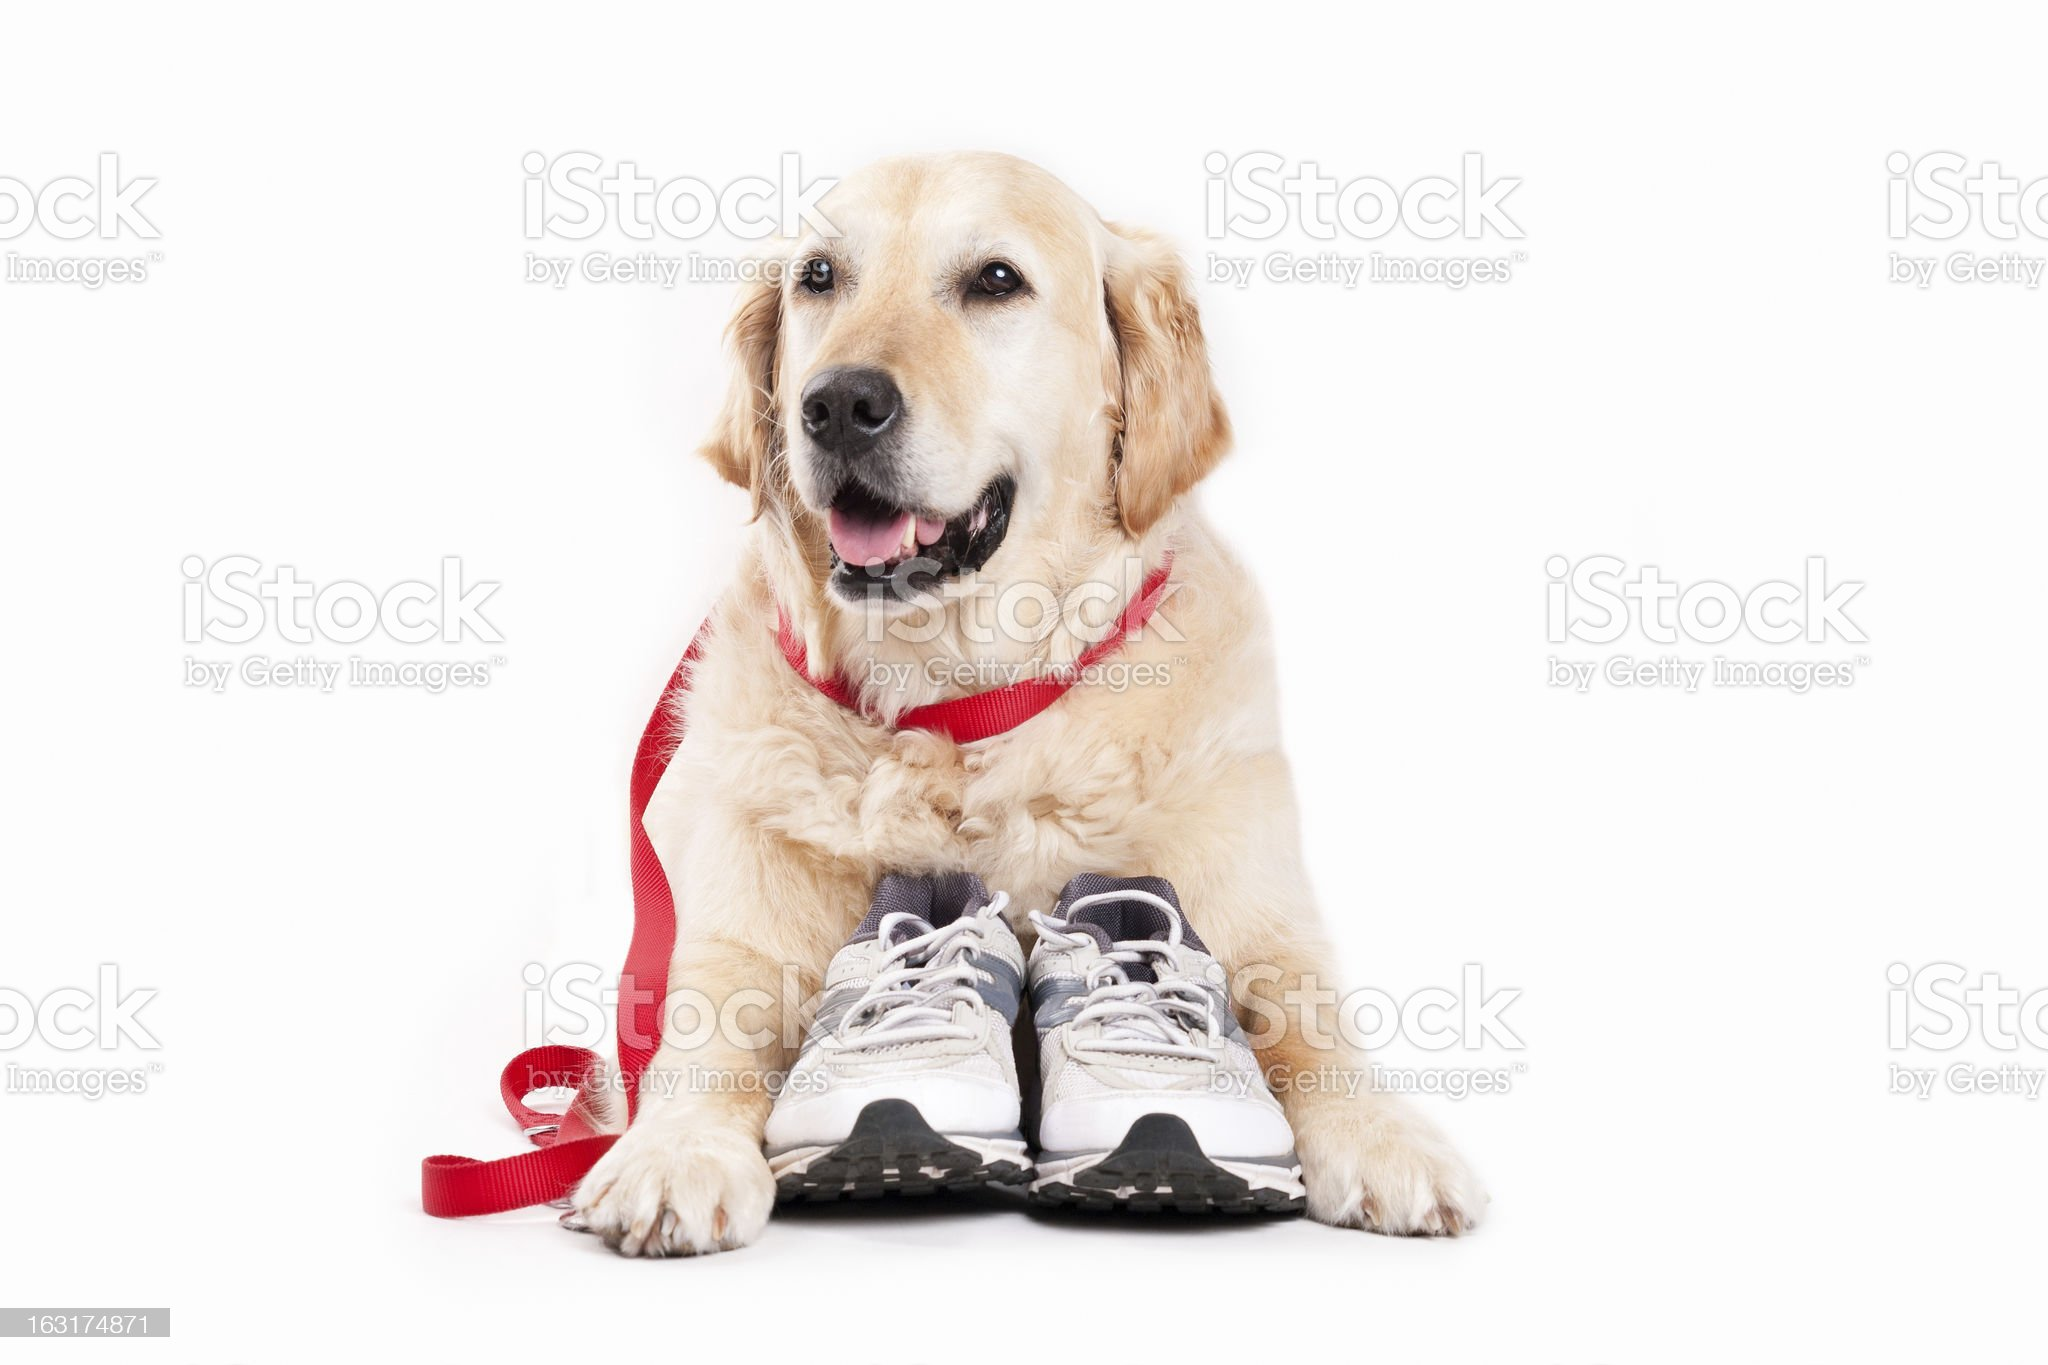 Golden Retriever and shoes royalty-free stock photo